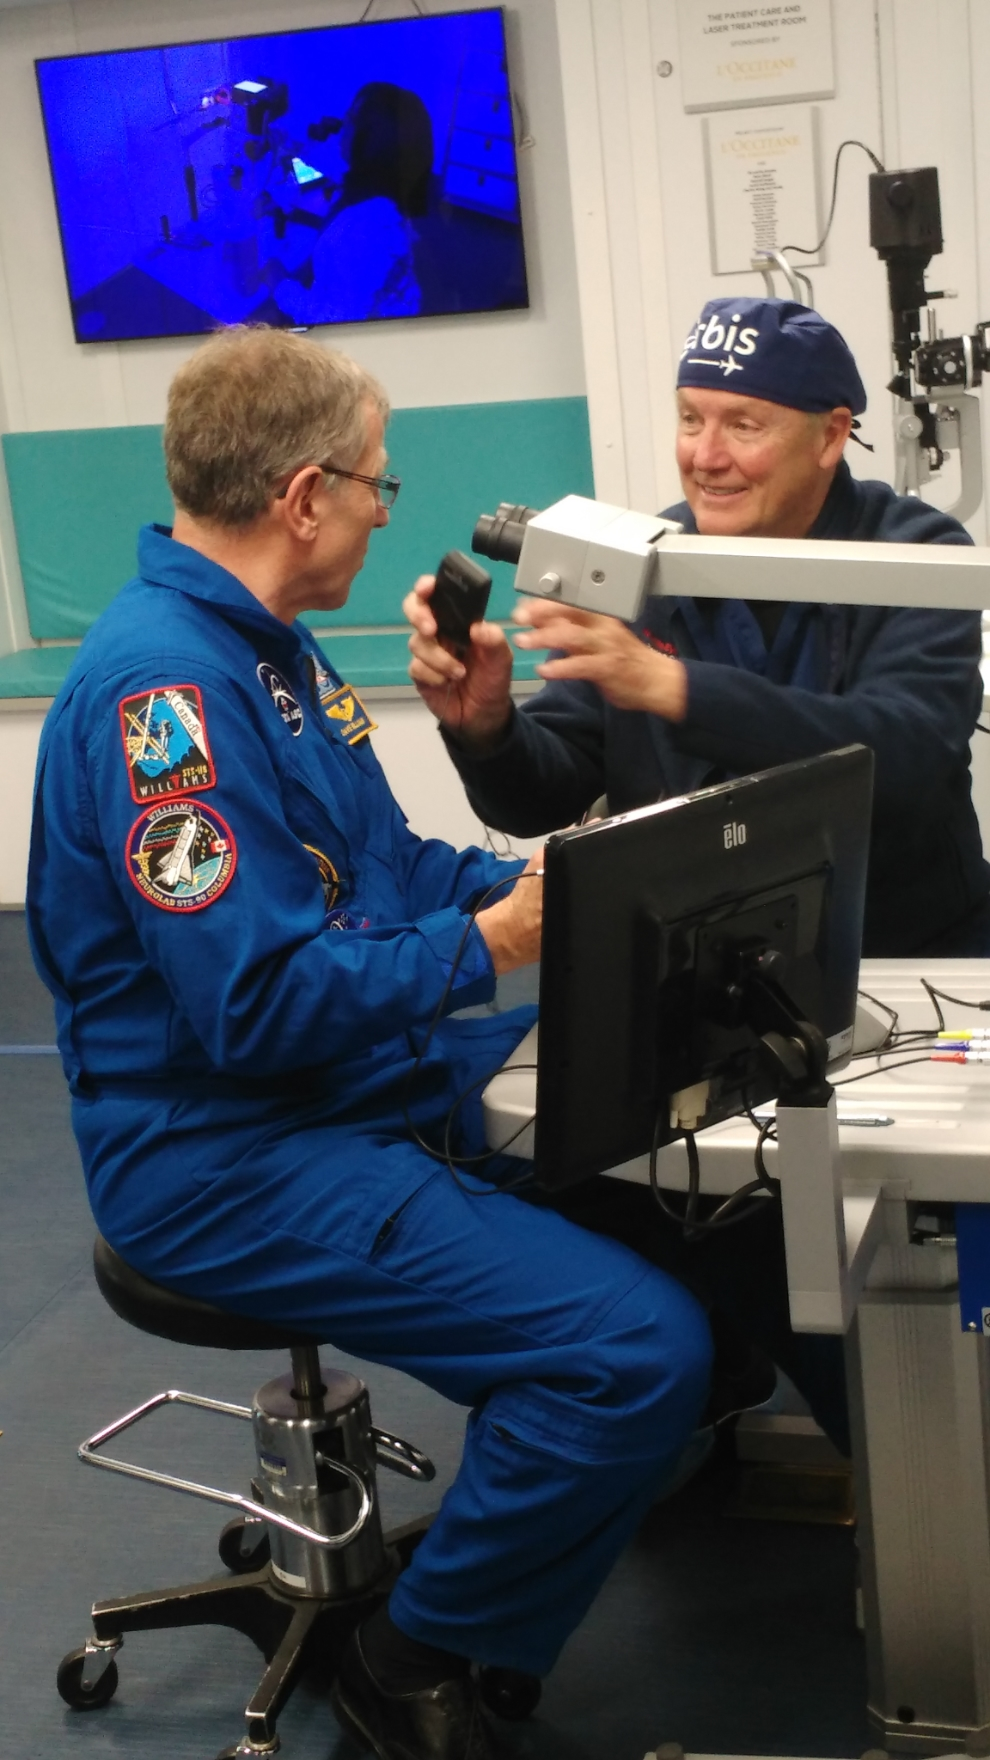 Retired Canadian astronaut Dave Williams (left) and Orbis volunteer Brian Leonard, a Canadian doctor, discuss a simulated eye surgery during a livestream June 2, 2019